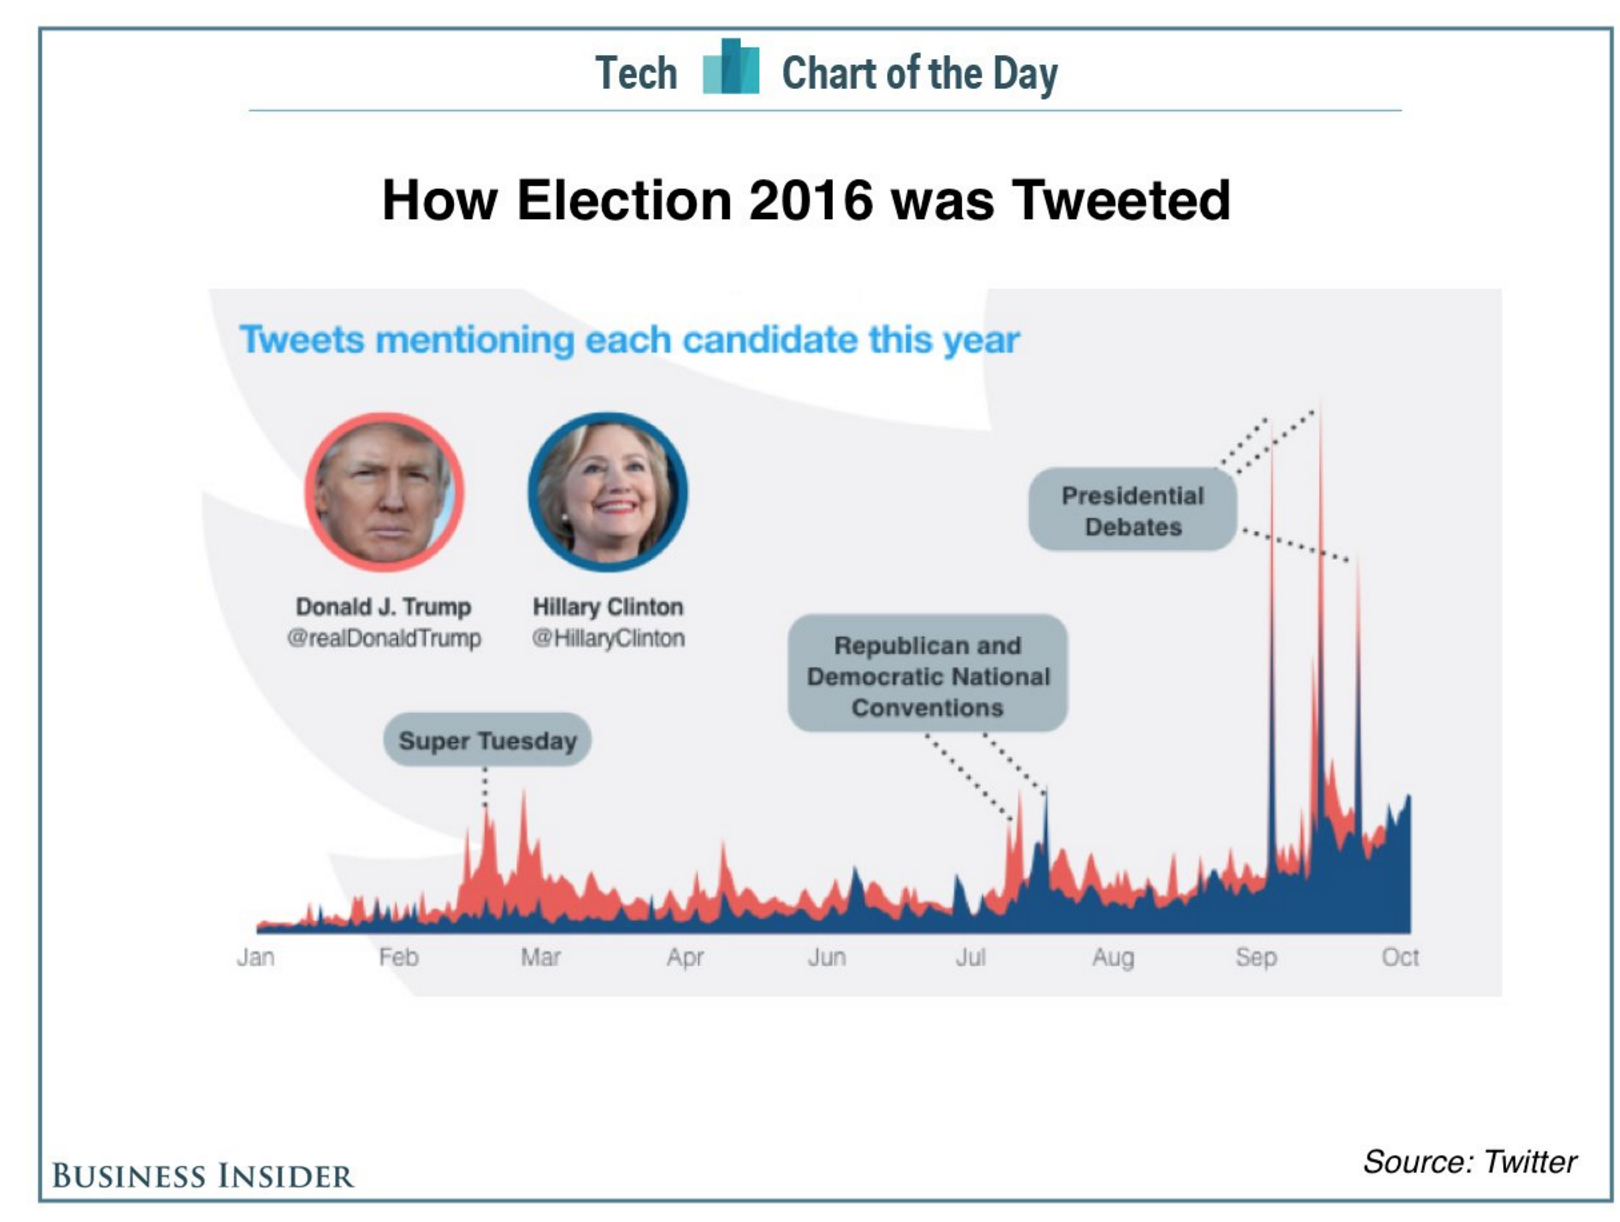 Twitter trends shows Trump with higher activity